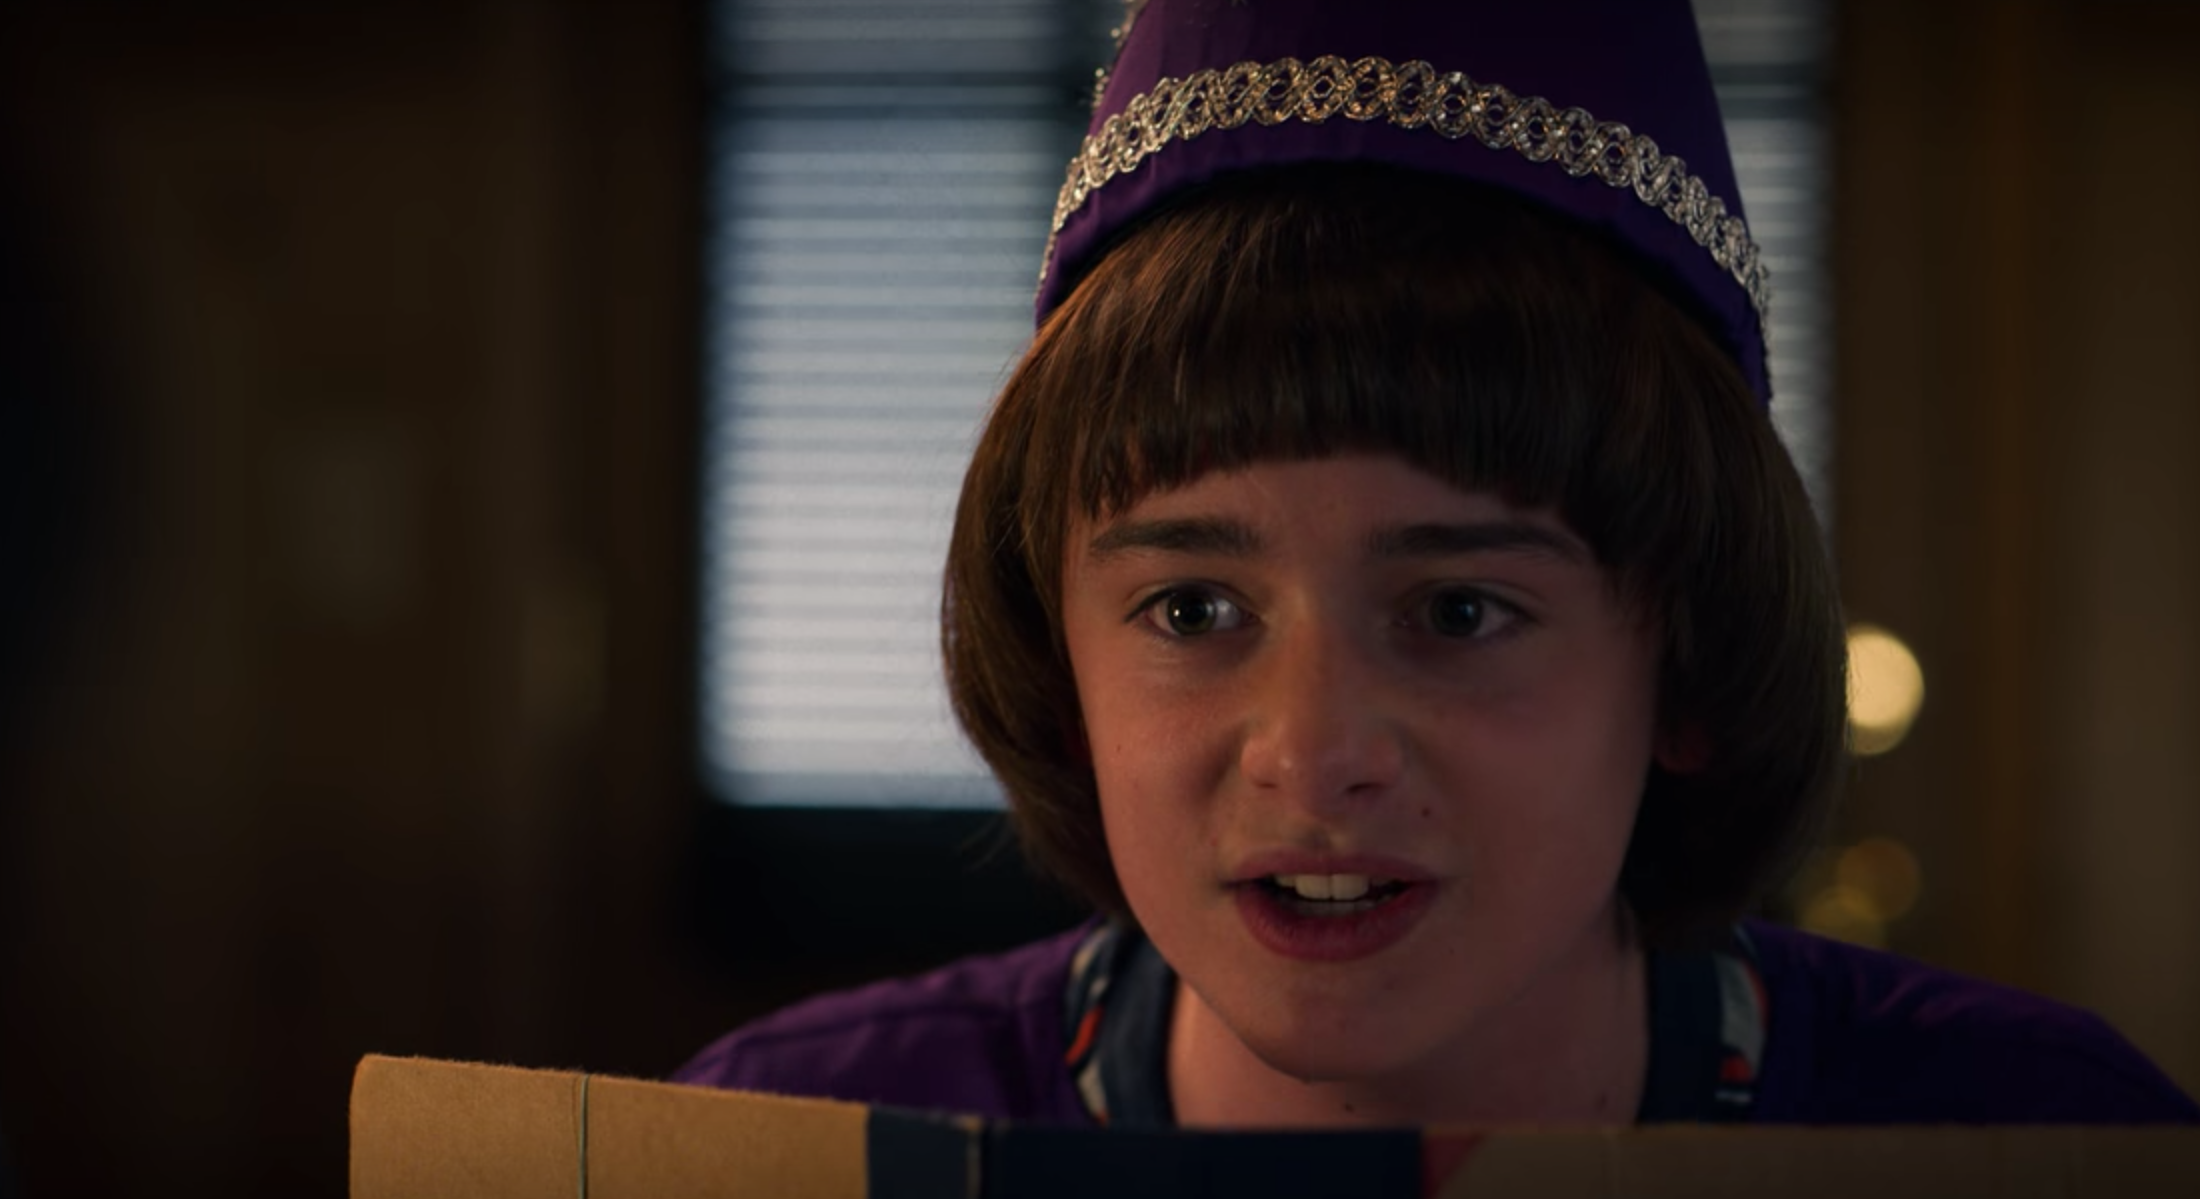 Will Byers' role in 'Stranger Things 3' is inspiring a lot of memes